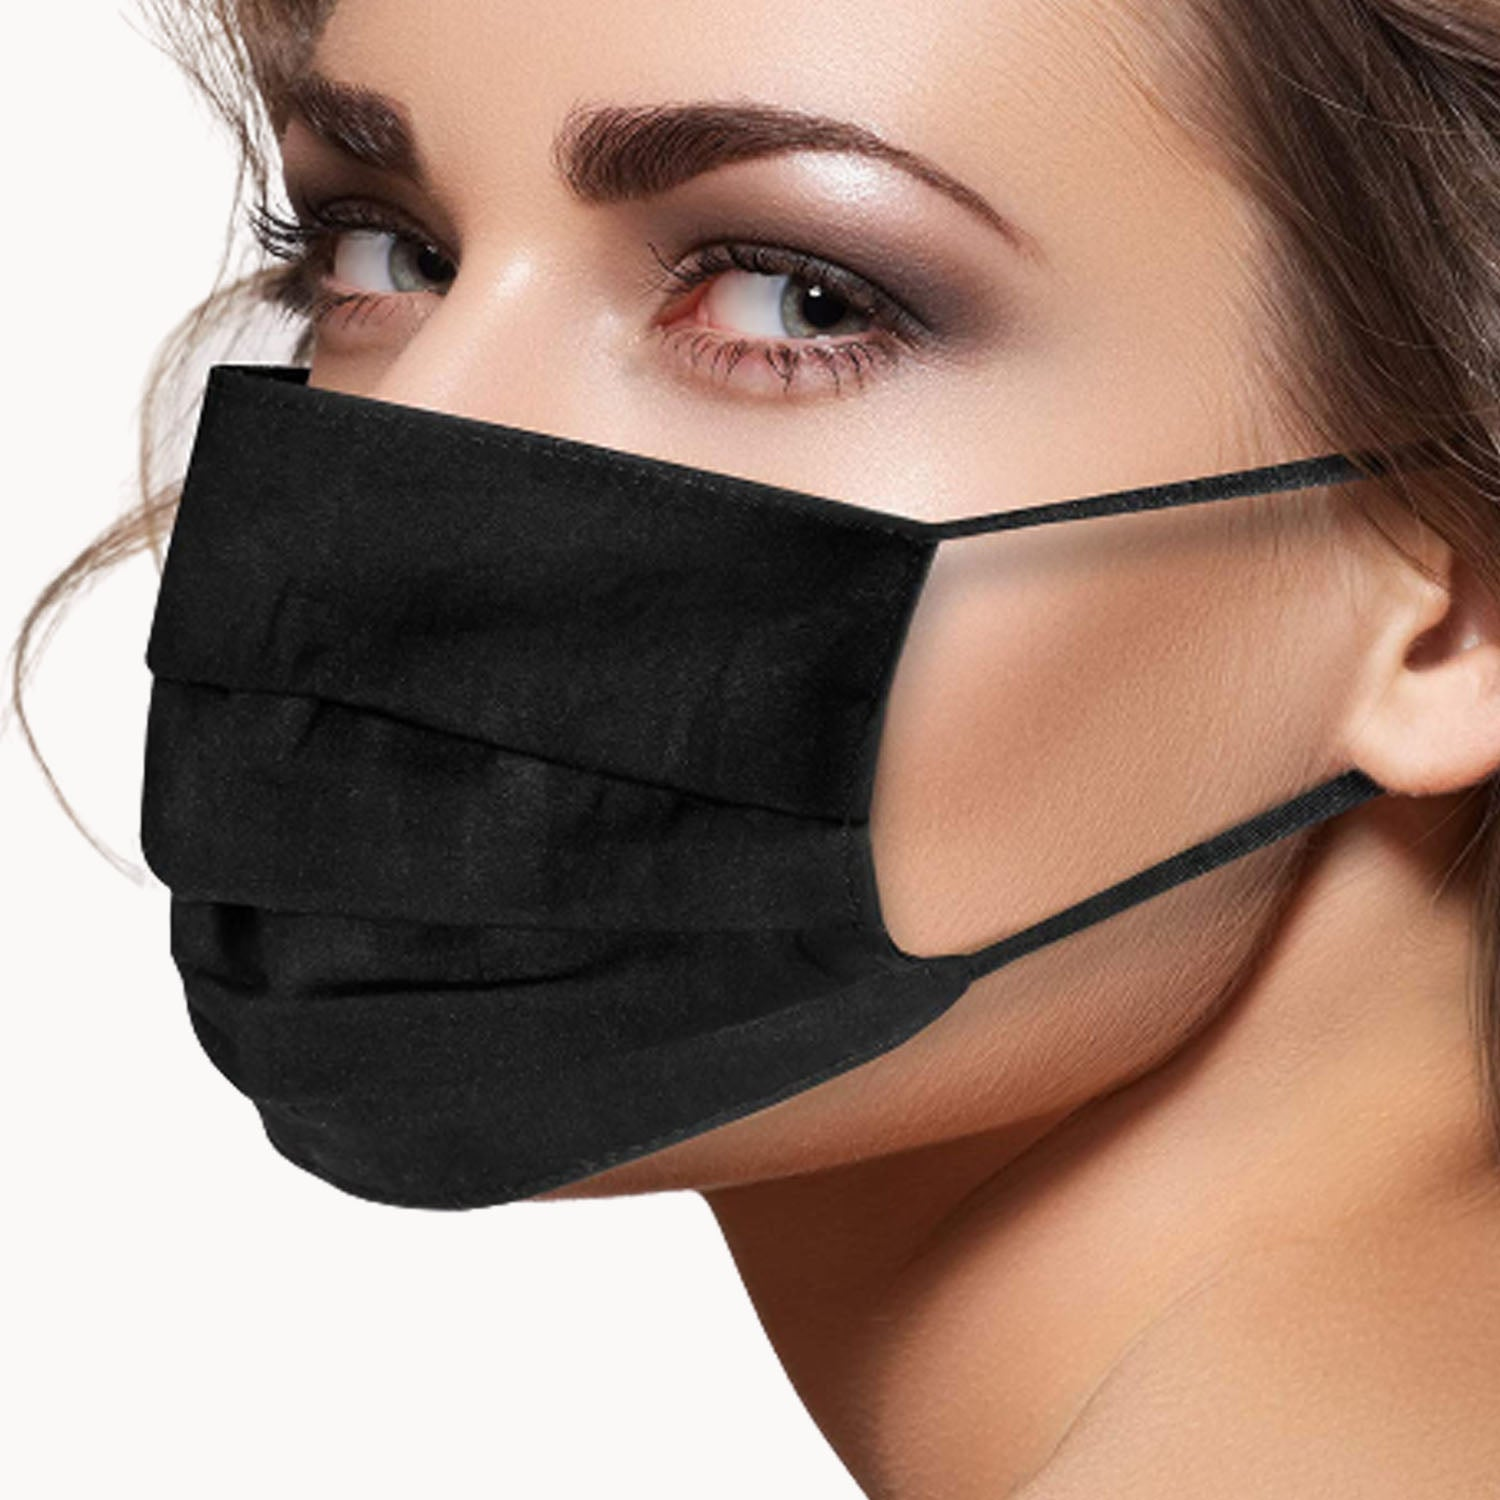 Reusable Cotton Face Masks, Work Safety Protective Equipment by Generise